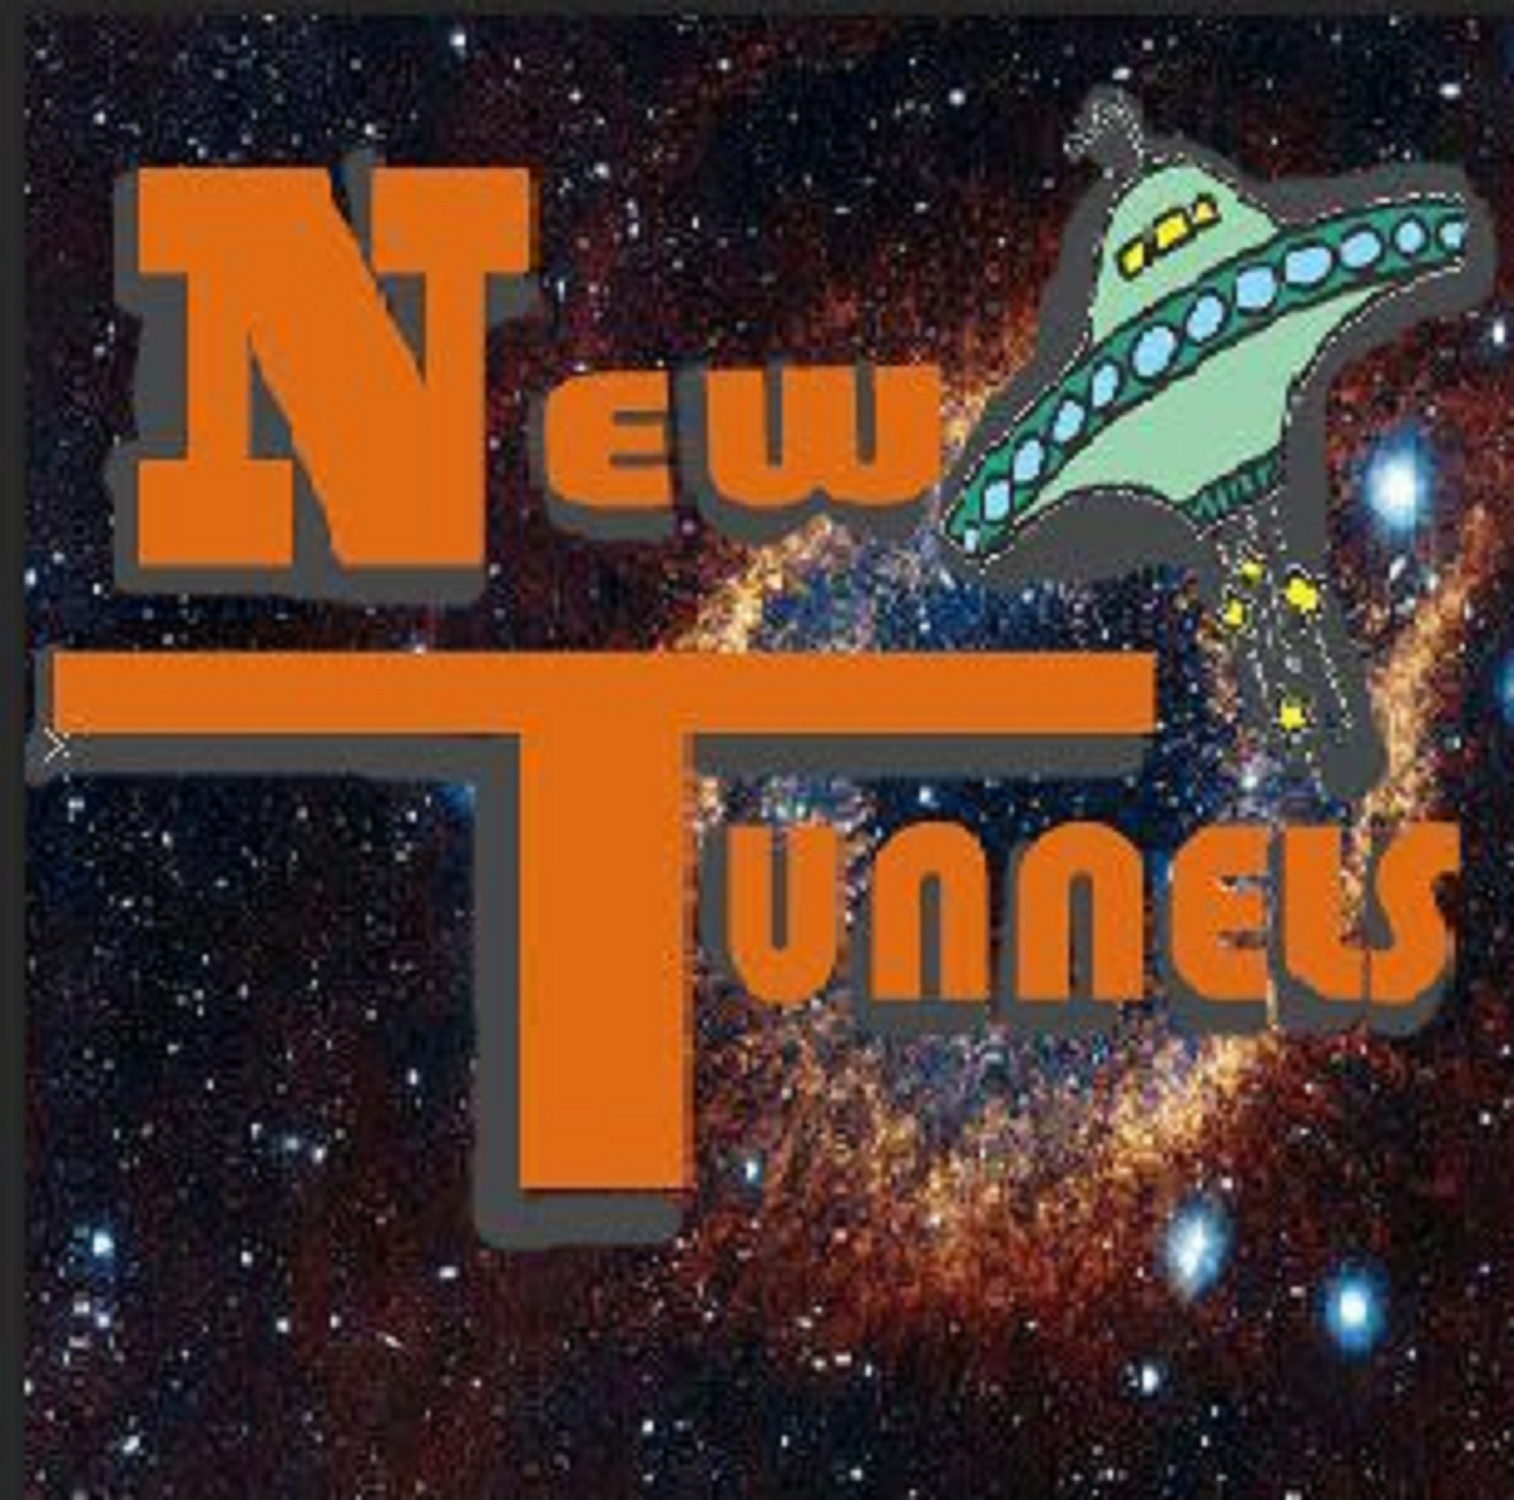 New Tunnels: The Show About Riddles